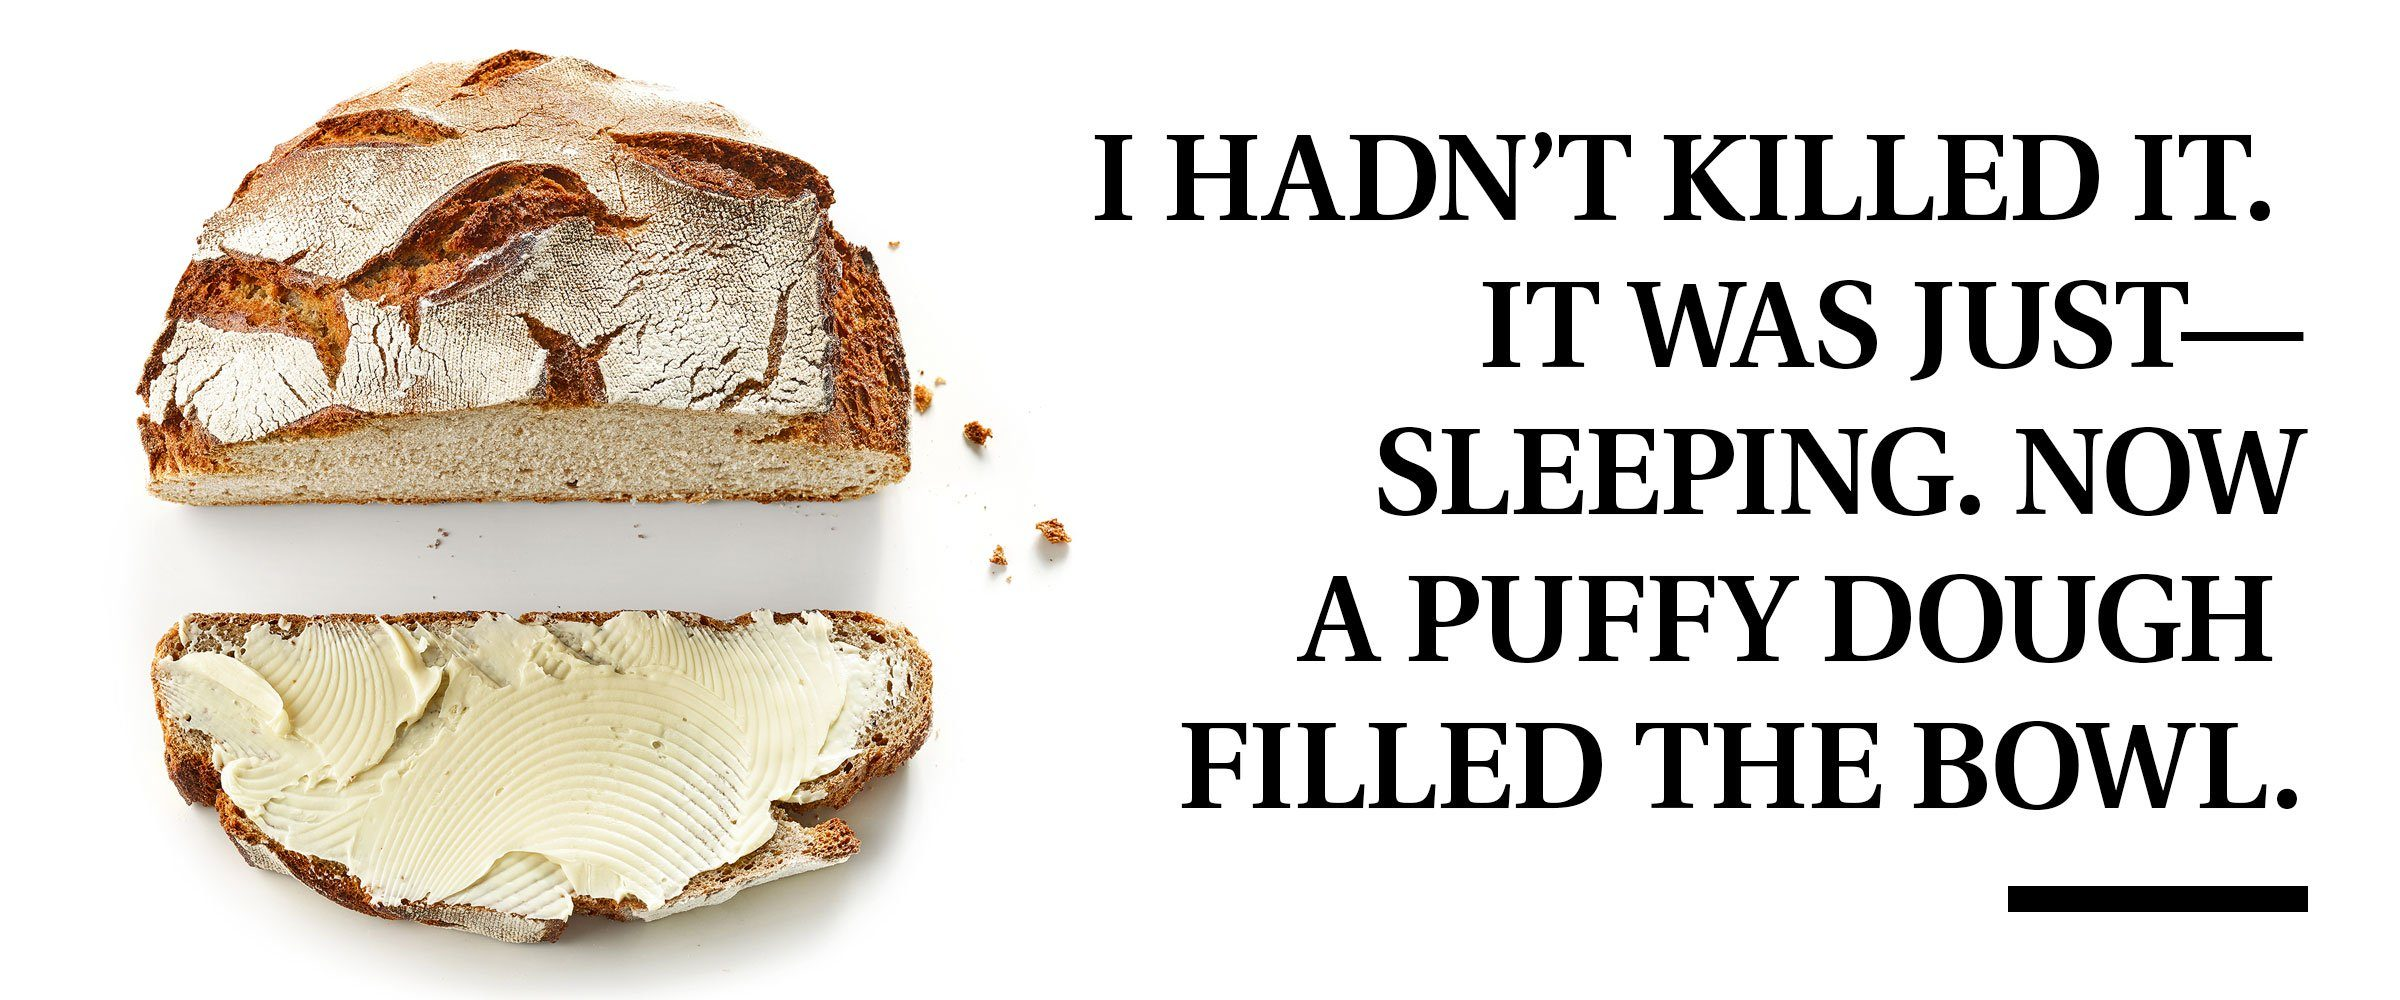 """bread with pull quote text: """"I hadn't killed it. It was just-sleeping. Now a puffy dough filled the bowl."""""""